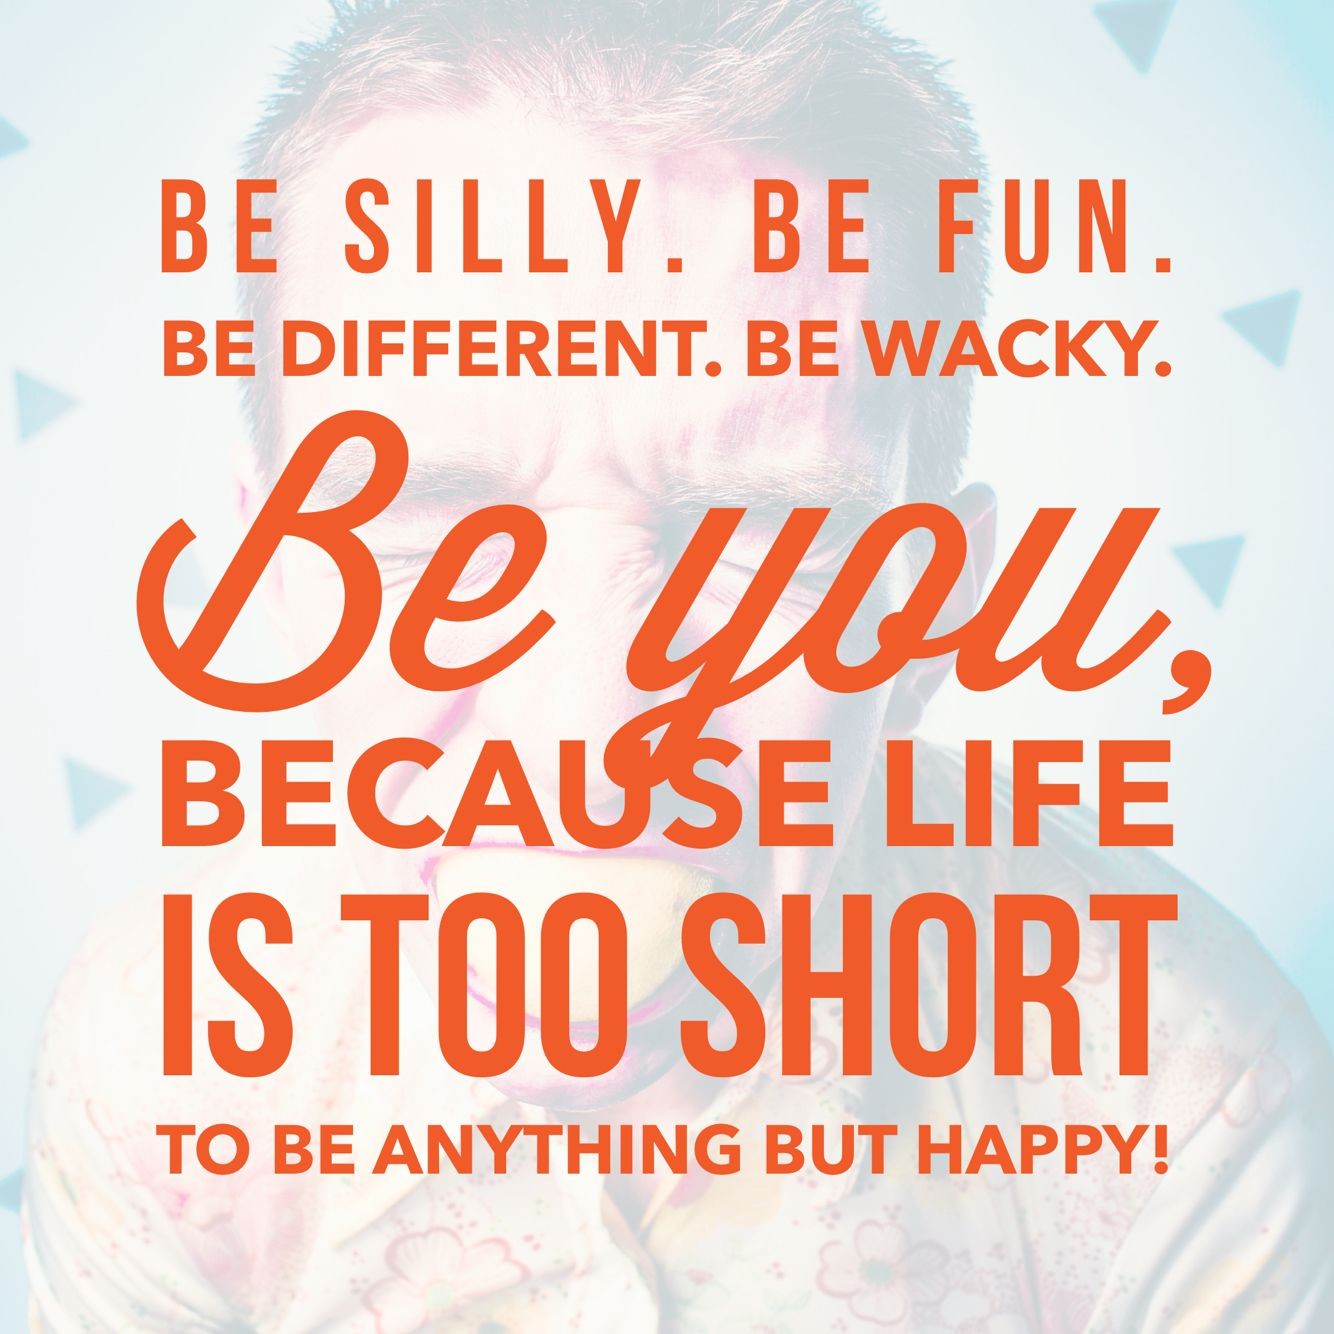 Be silly, Be fun. Be different. Be crazy. Be YOU! Silly